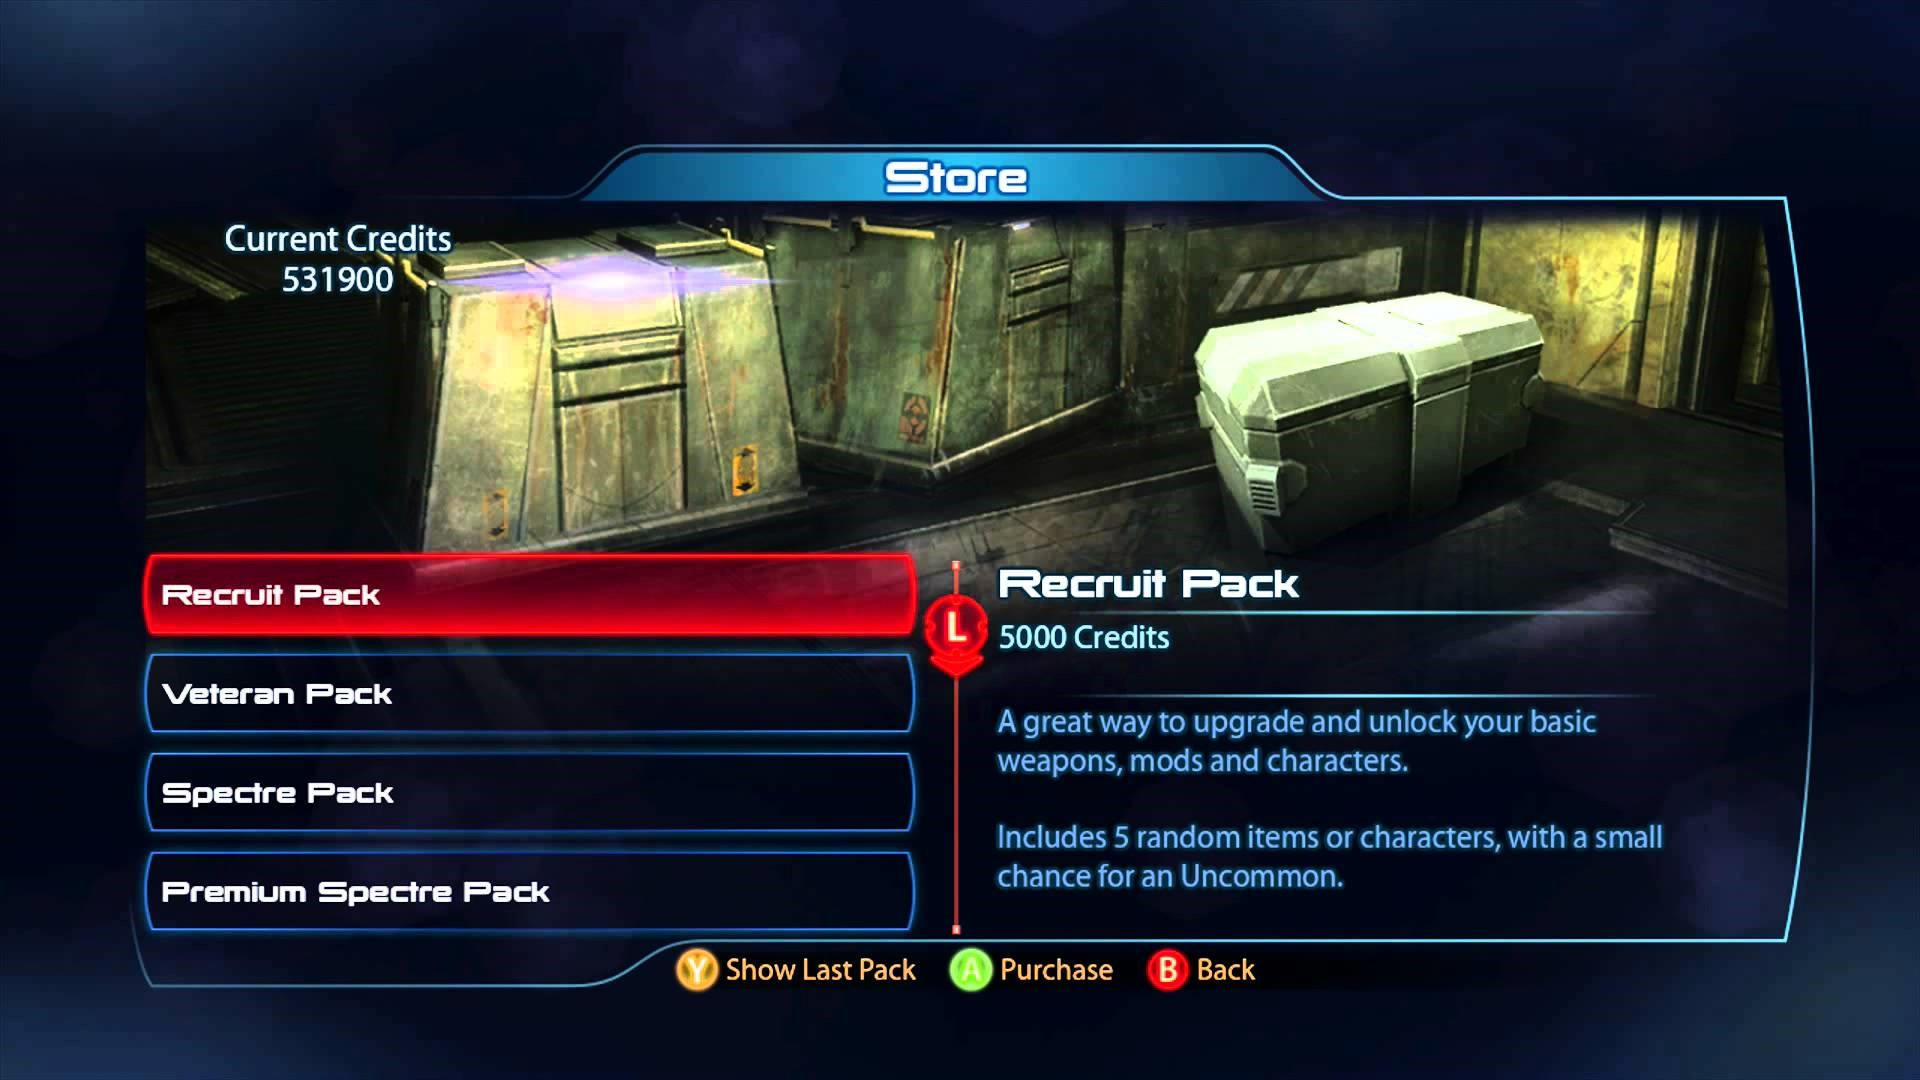 Mass Effect 3's Loot boxes, bought either through gameplay or real-world currency. Research into the packs went to an extreme amount of depth, down to the sounds of opening packs just to ensure players would feel like they were getting value.